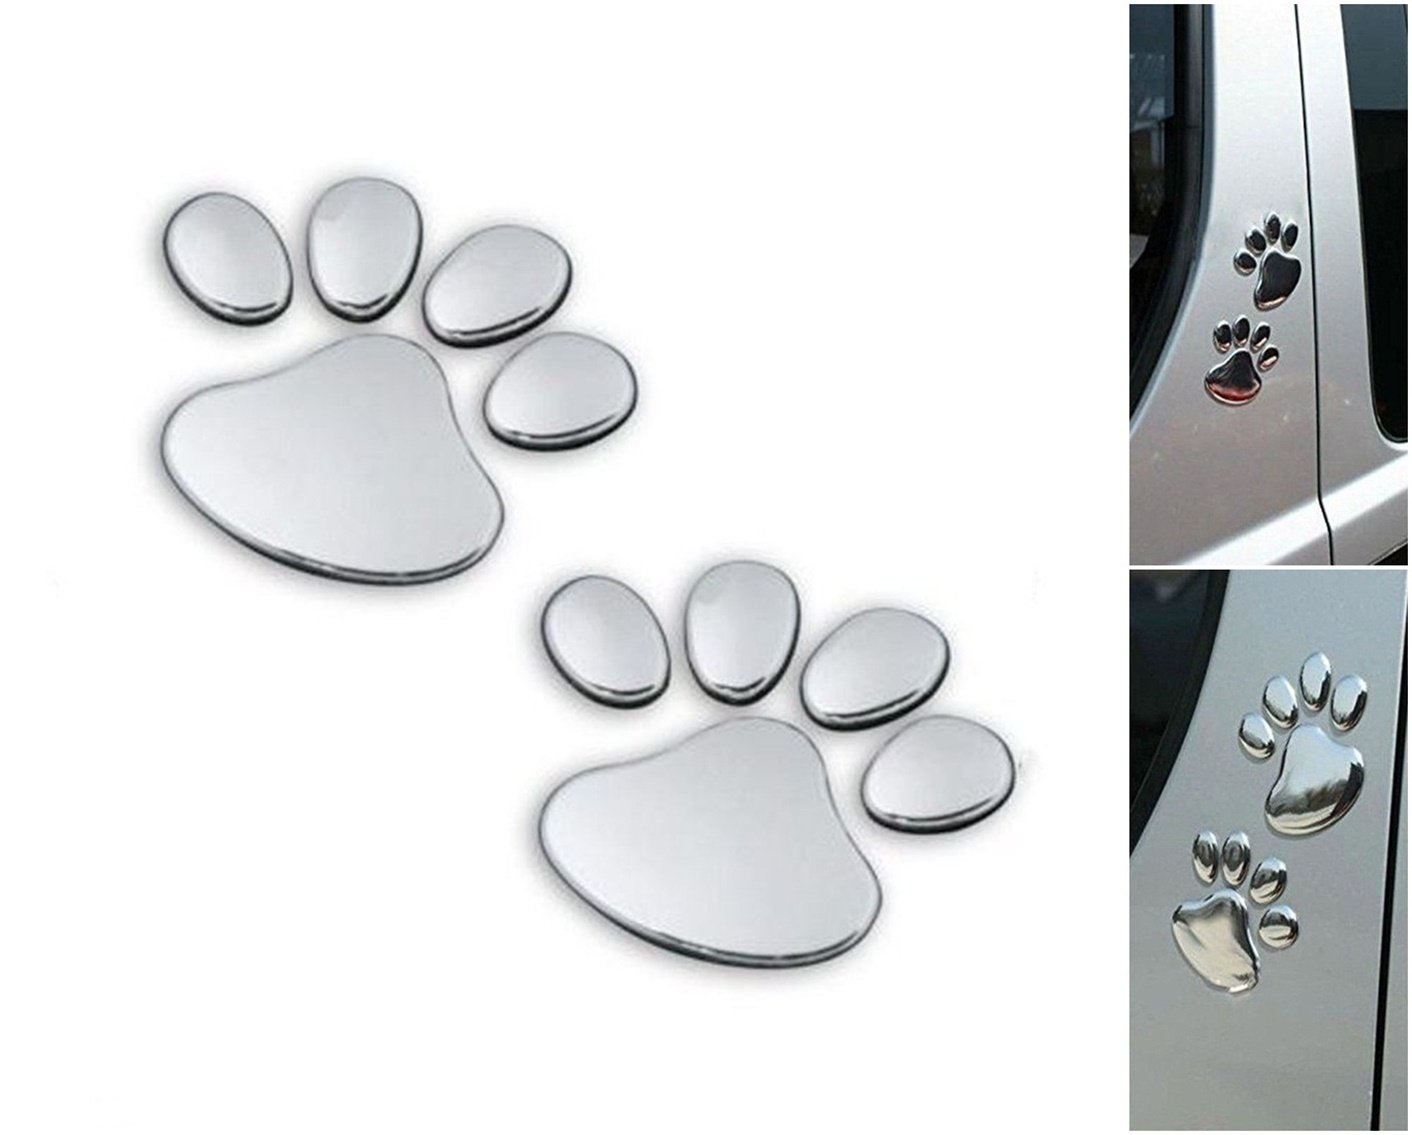 Chiam-Mart 1 Pair Awe Inspiring Unique 3D Pets Paw Window Sticker Windows Badge Truck Decor Animal Wall Vinyl Luggage Hoverboard Patches Bike Graphics Laptop Stickers Colors Silver